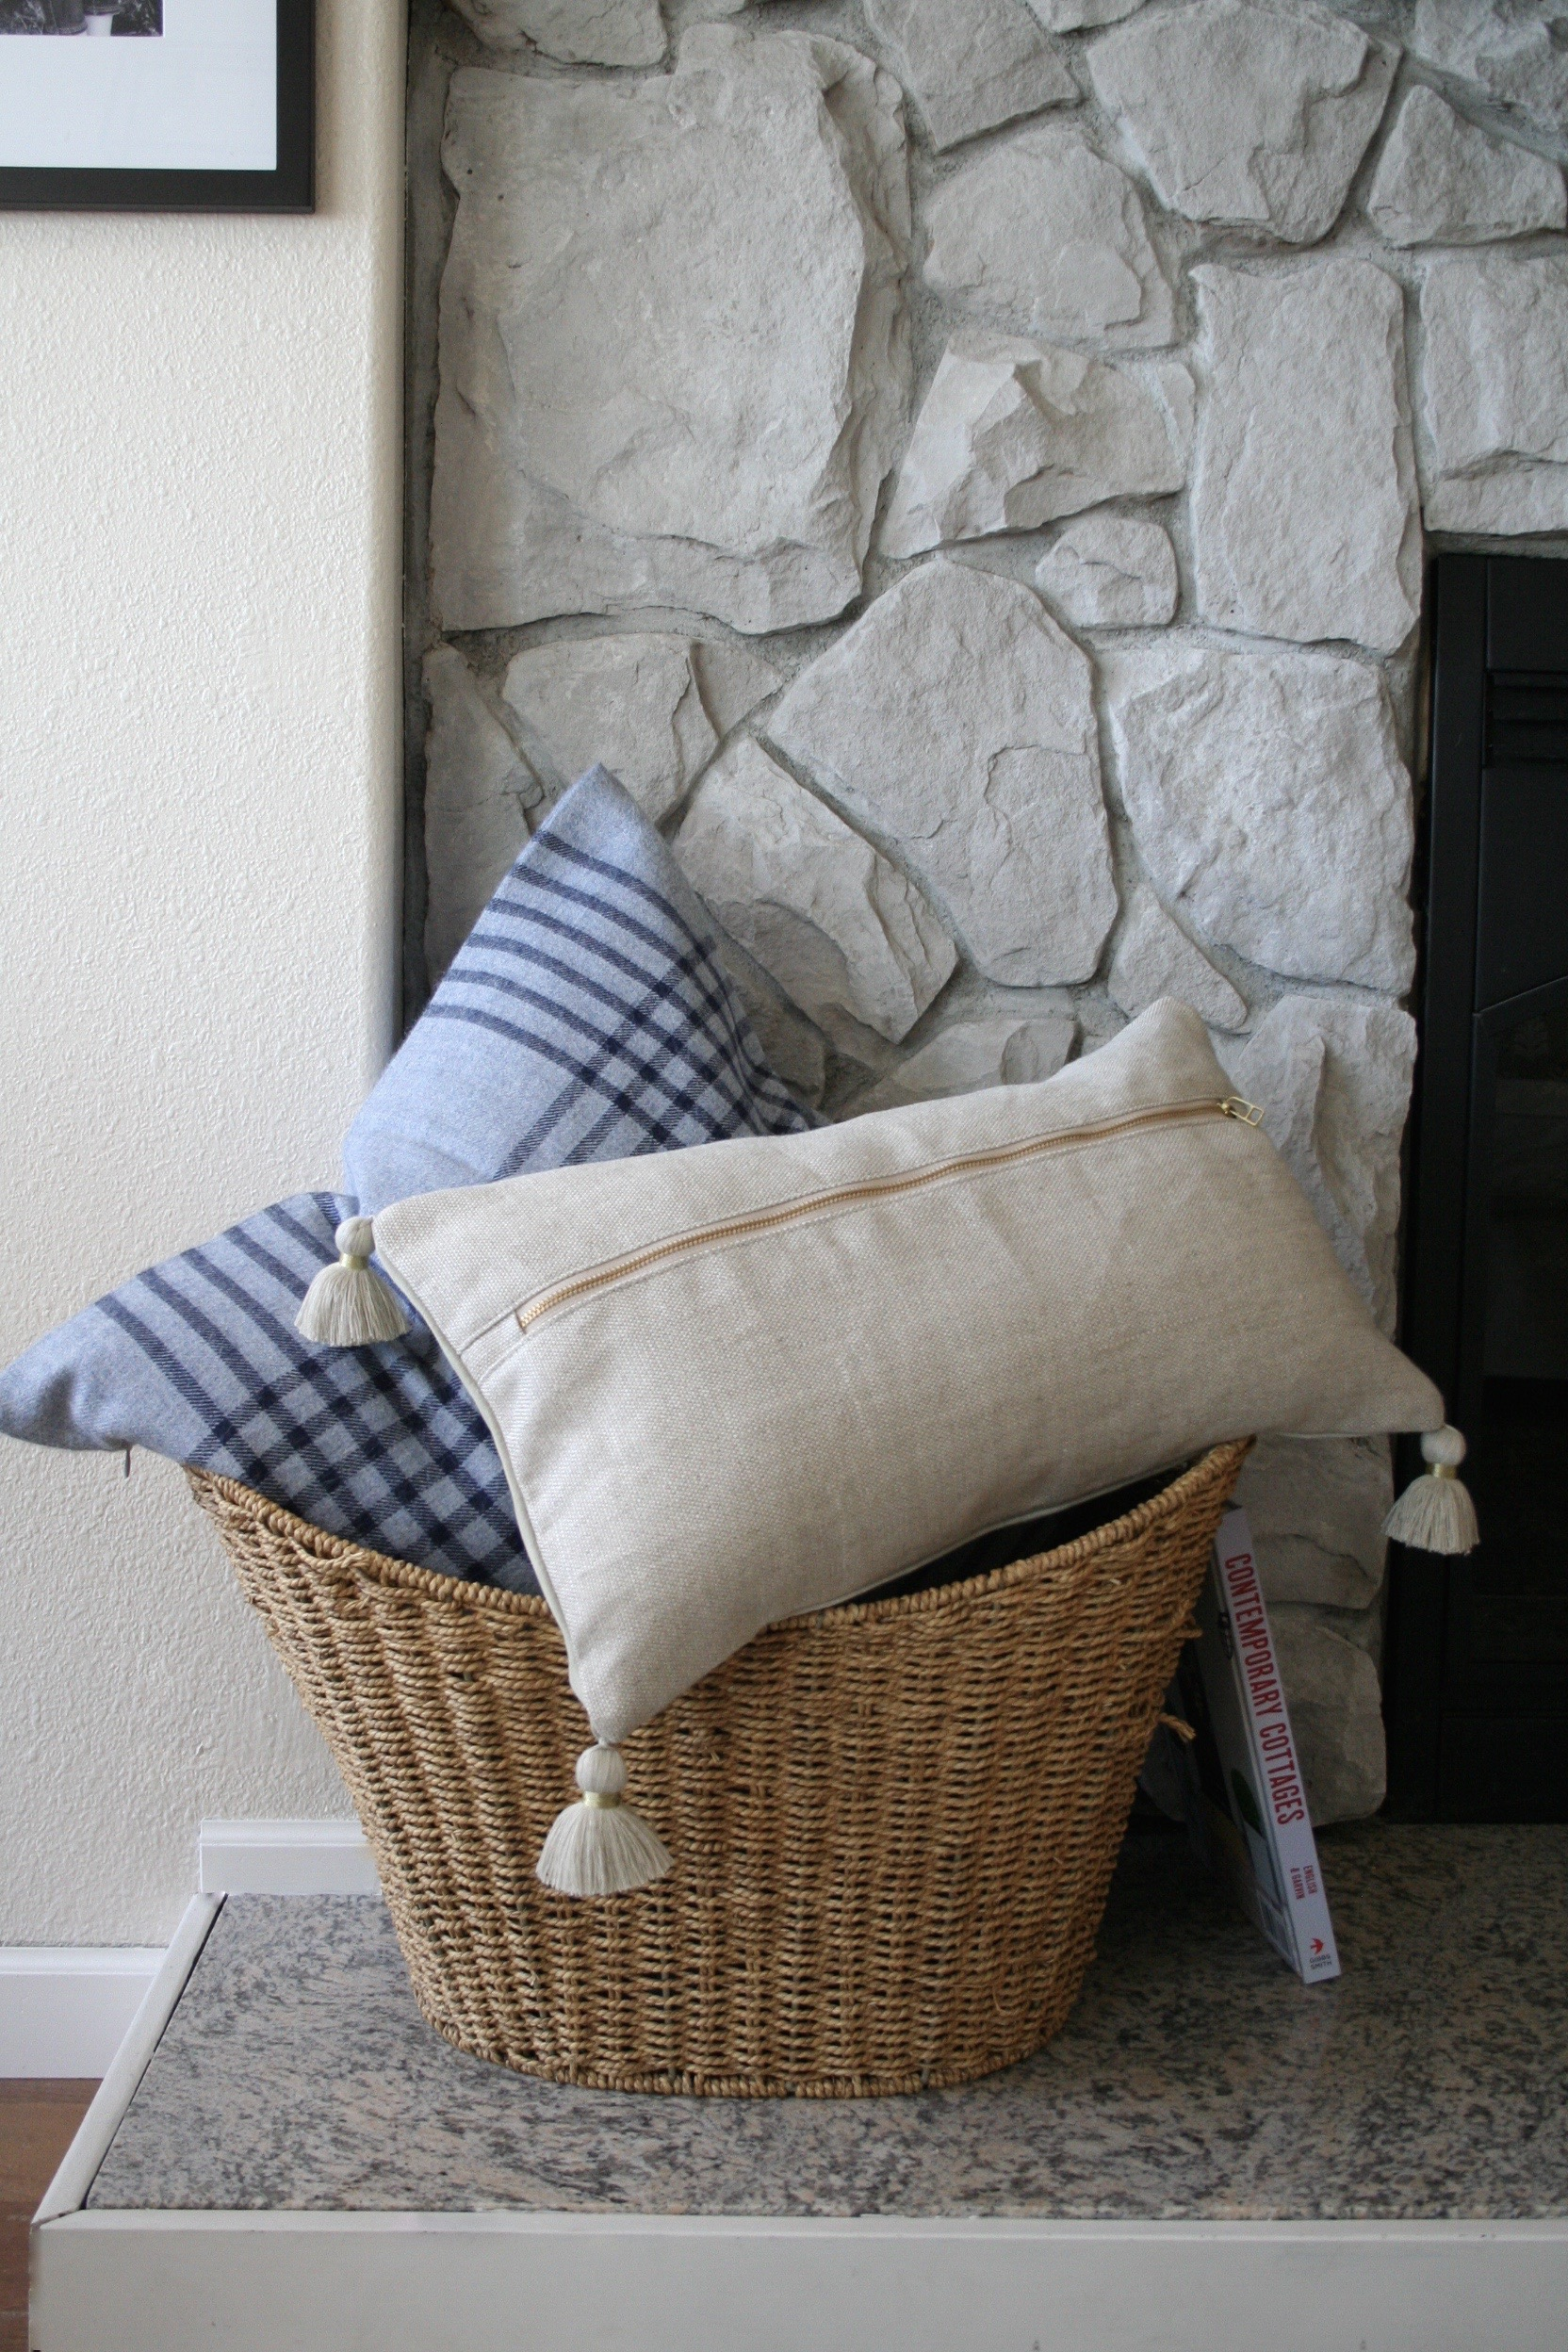 Beach House Stone Fireplace and Pillows in Basket